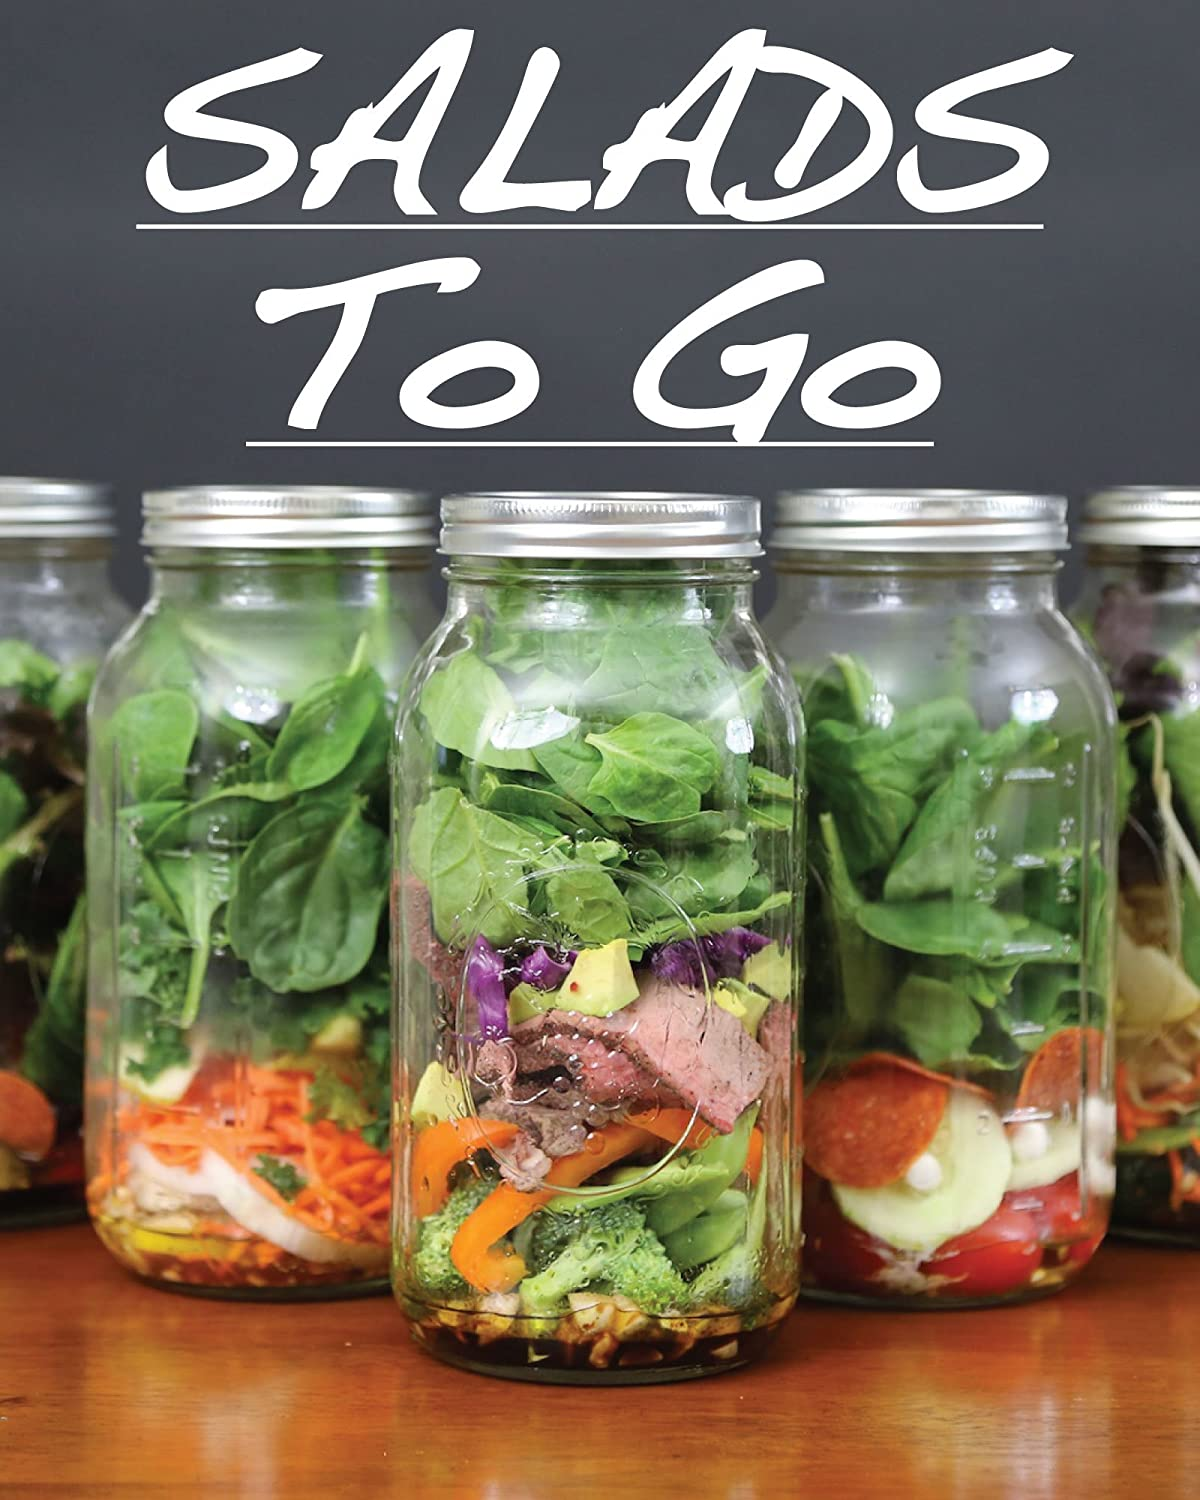 http://www.amazon.com/Salads-To-Go-Arnel-Ricafranca-ebook/dp/B00ET594CC/ref=as_sl_pc_ss_til?tag=lettfromahome-20&linkCode=w01&linkId=5PIMSX56IRSL7AYY&creativeASIN=B00ET594CC